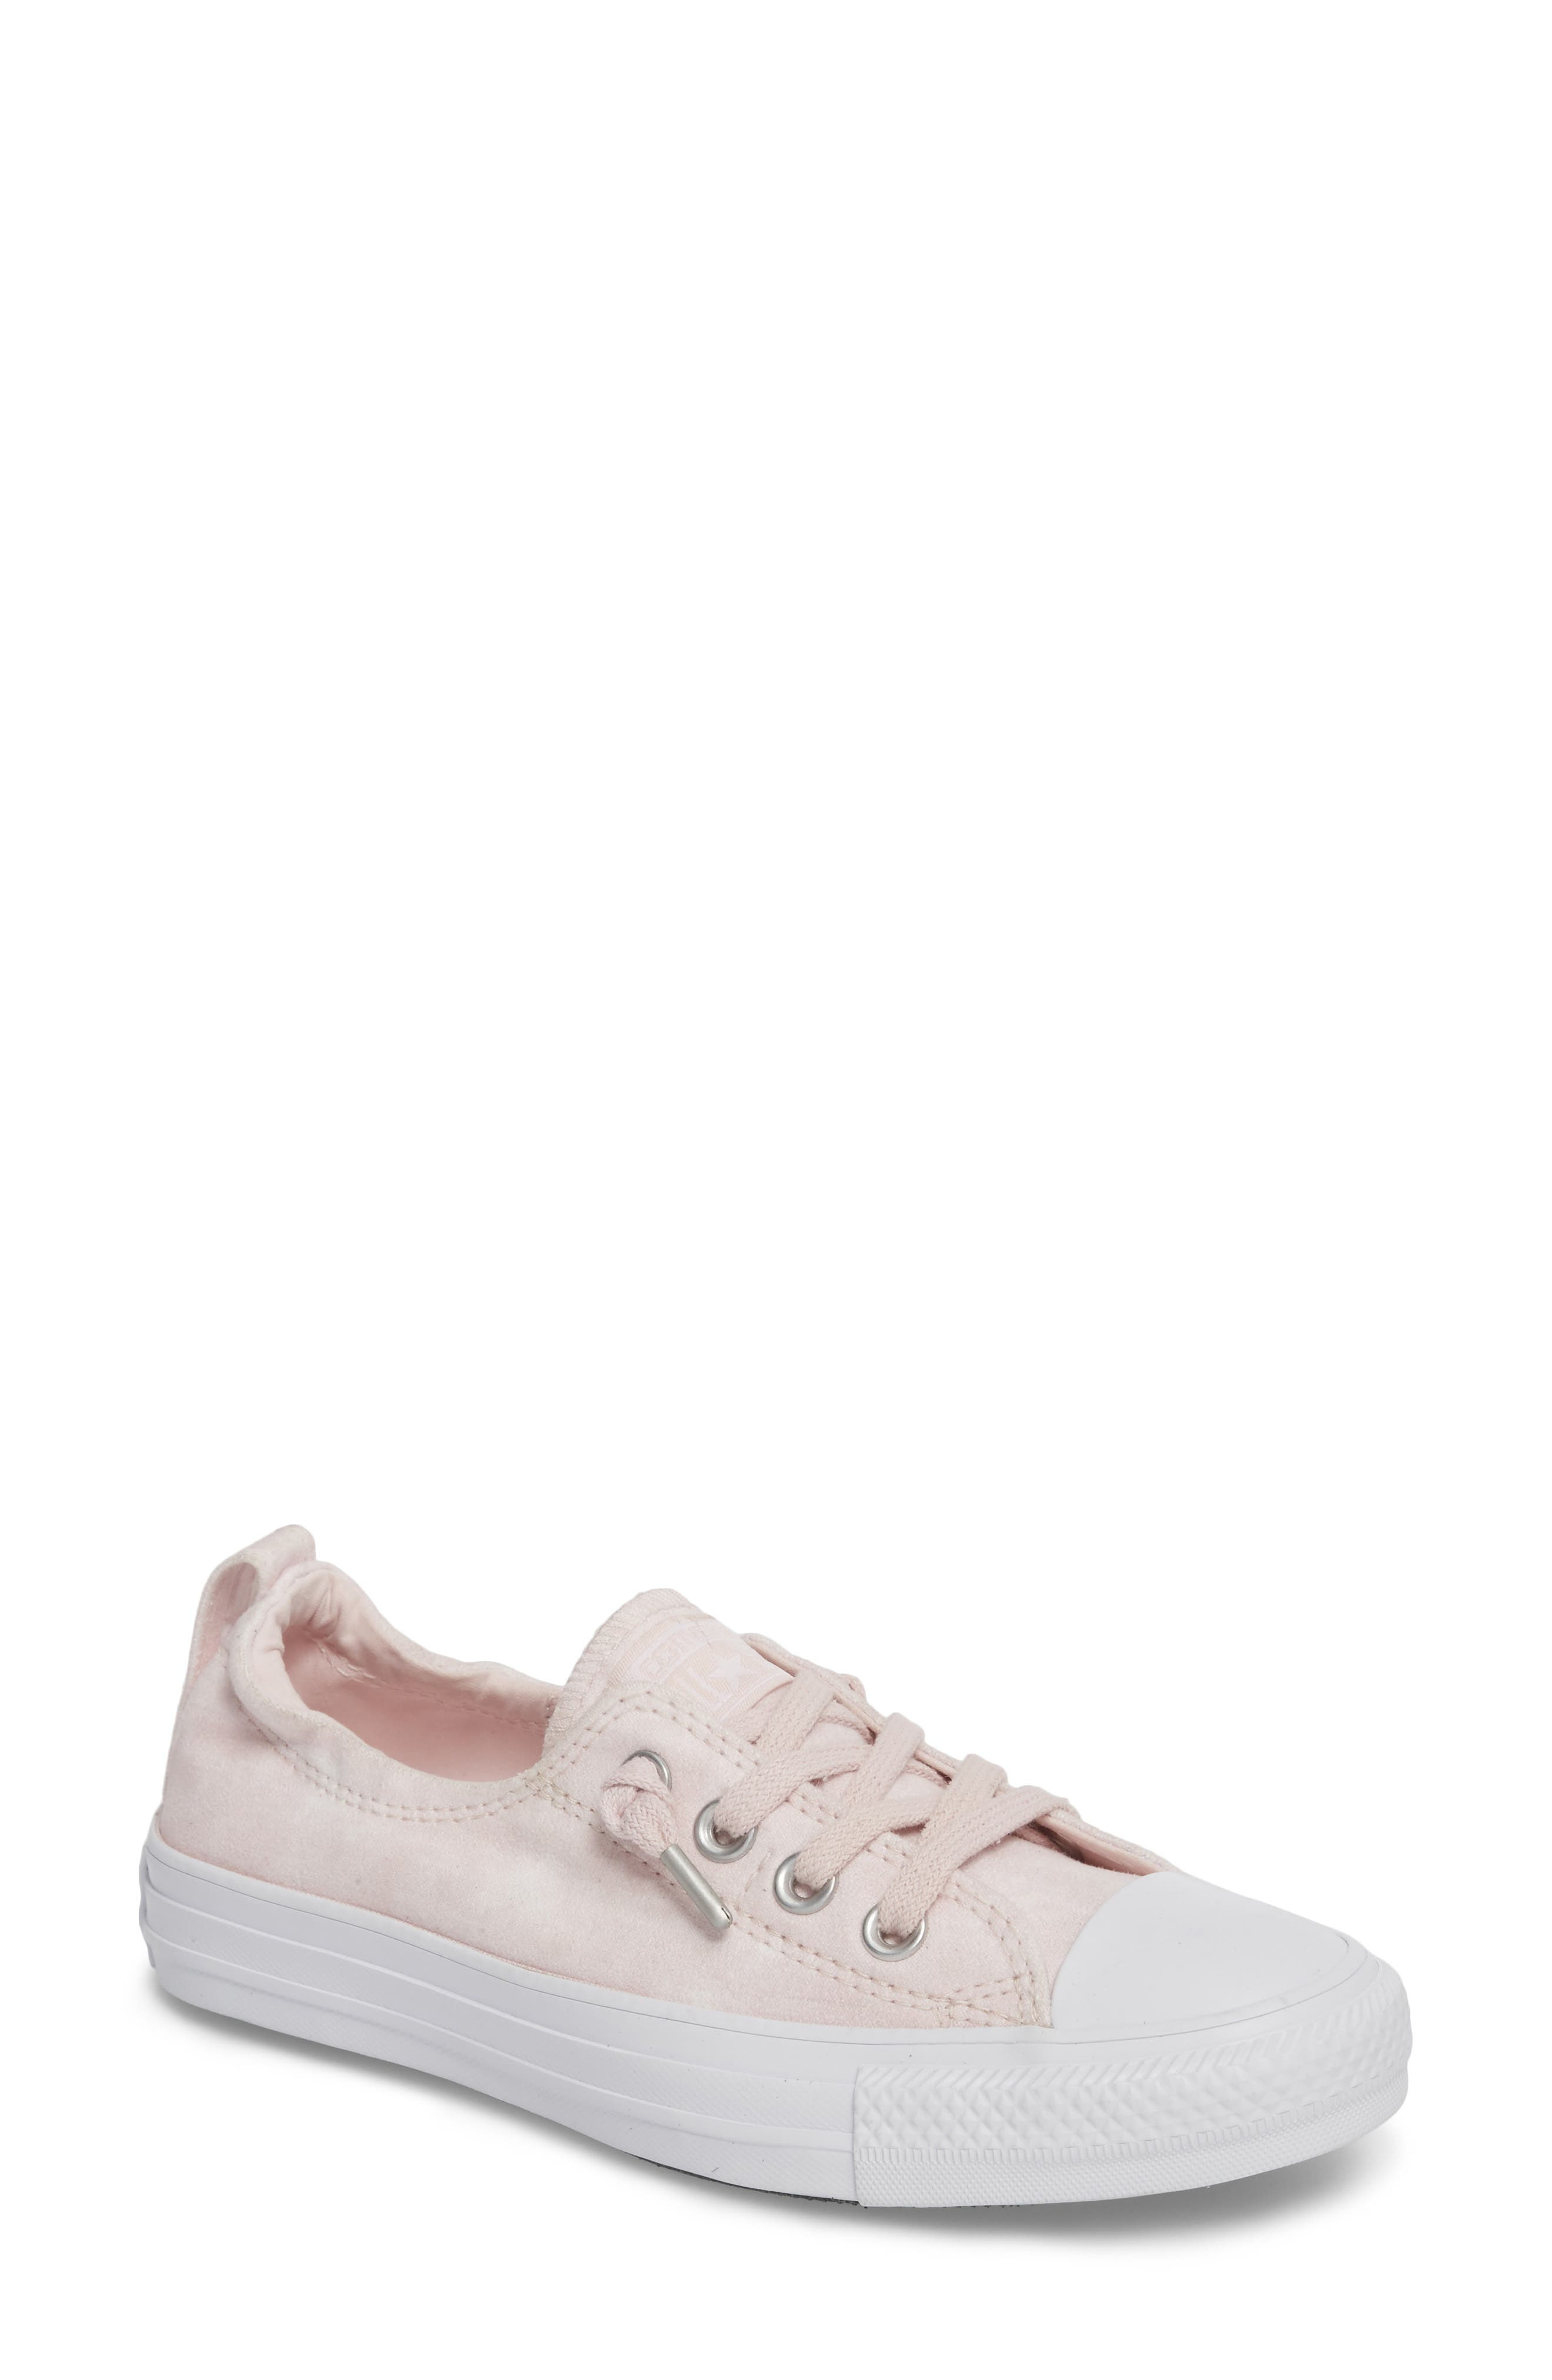 Chuck Taylor<sup>®</sup> All Star<sup>®</sup> Shoreline Peached Twill Sneaker,                             Main thumbnail 1, color,                             Barely Rose